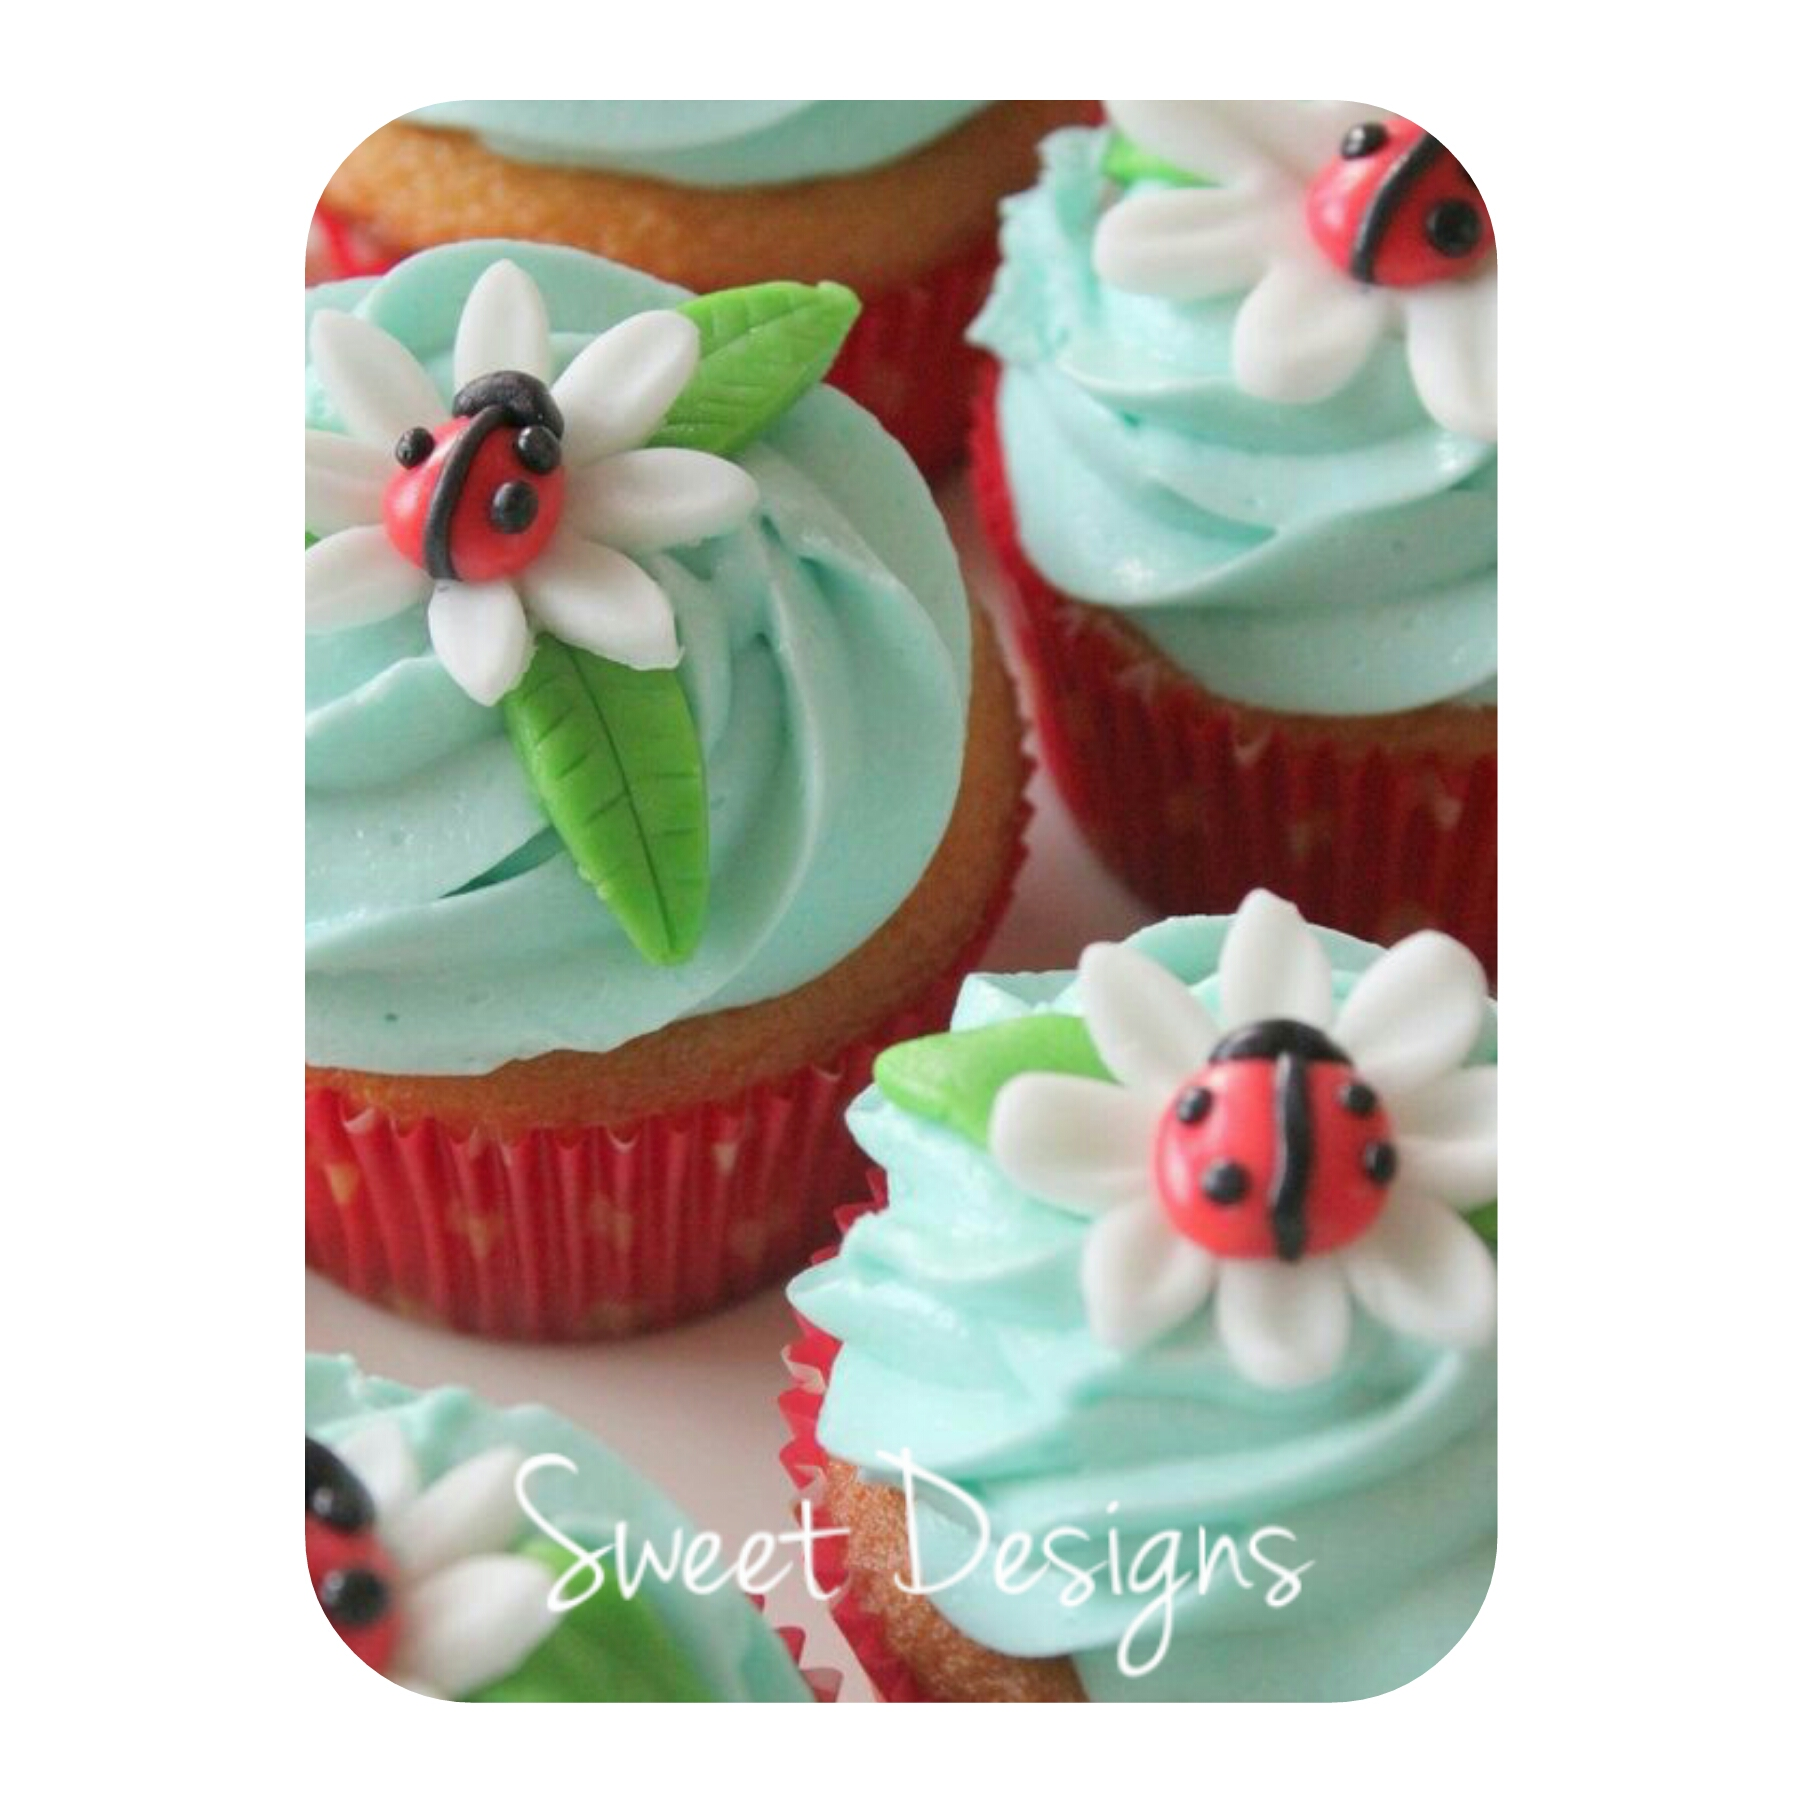 Buttercream Cupcakes with fondant flowers, leaves and lady bugs